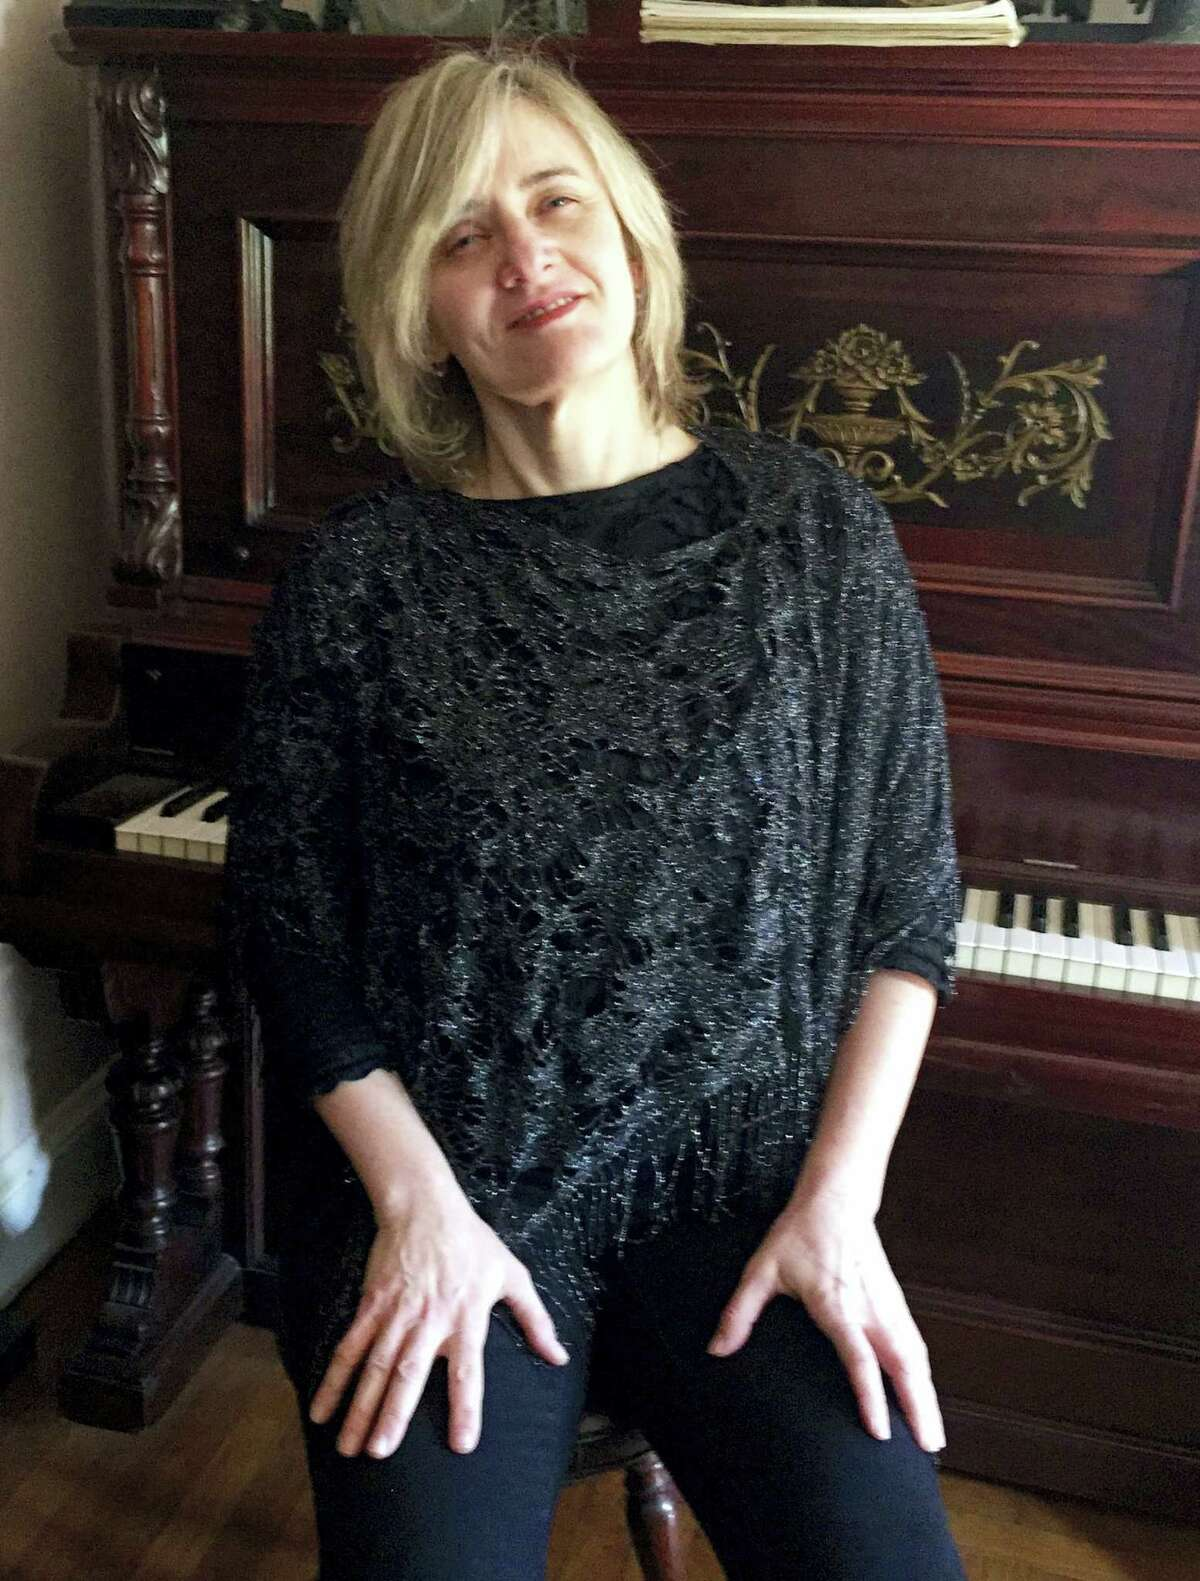 Contributed photo Pianist Margarita Nuller will perform a concert at St. Michael's Church on Feb. 5.